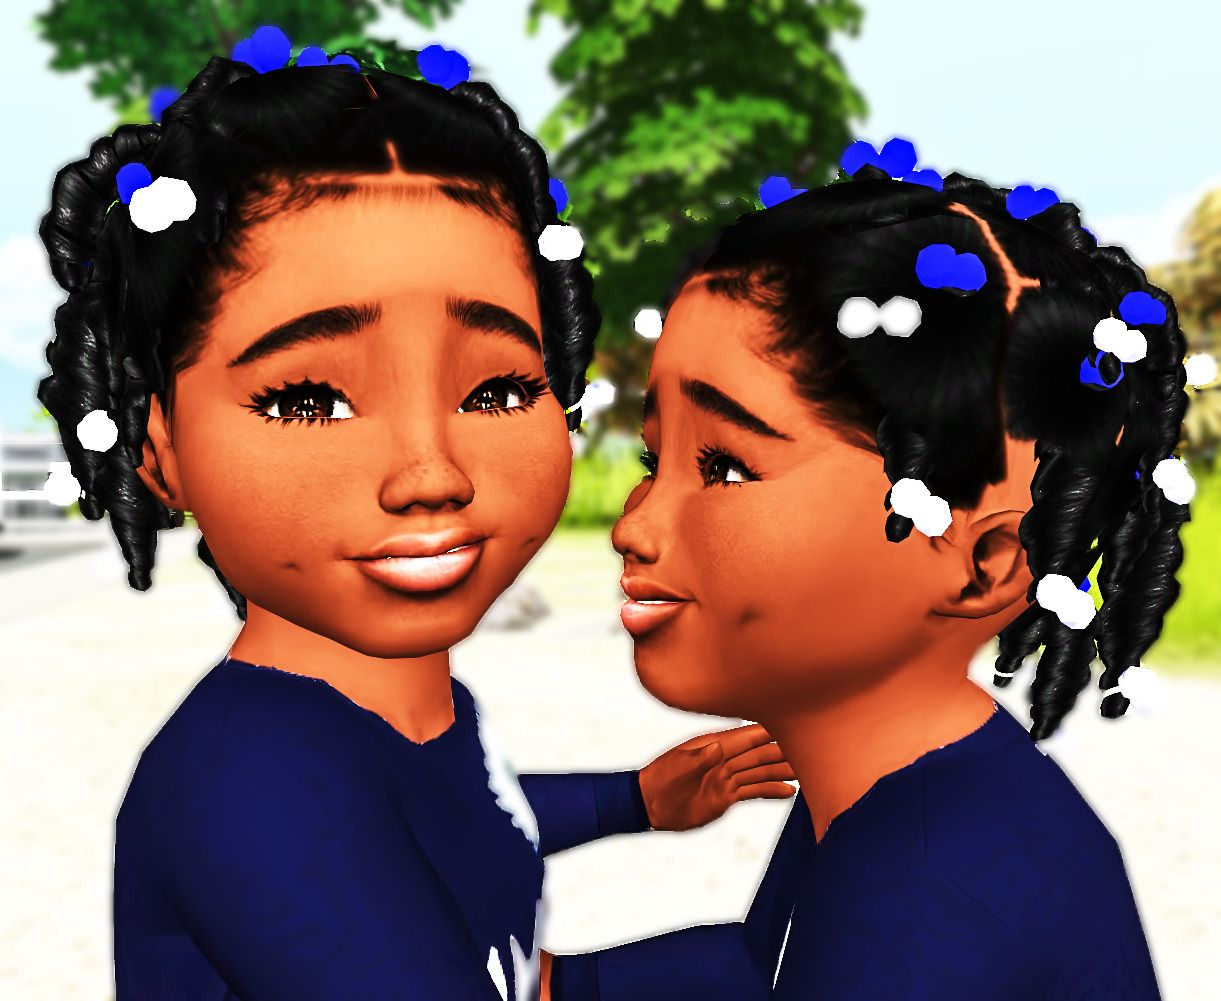 Ebonix Sincerelyasimmer Twisted Pigtailscan We Take A Moment To Give Sincerelyasimmer A Mf Standing Ovation These Are The Cutest Litt Sims Sims 4 Sims Hair